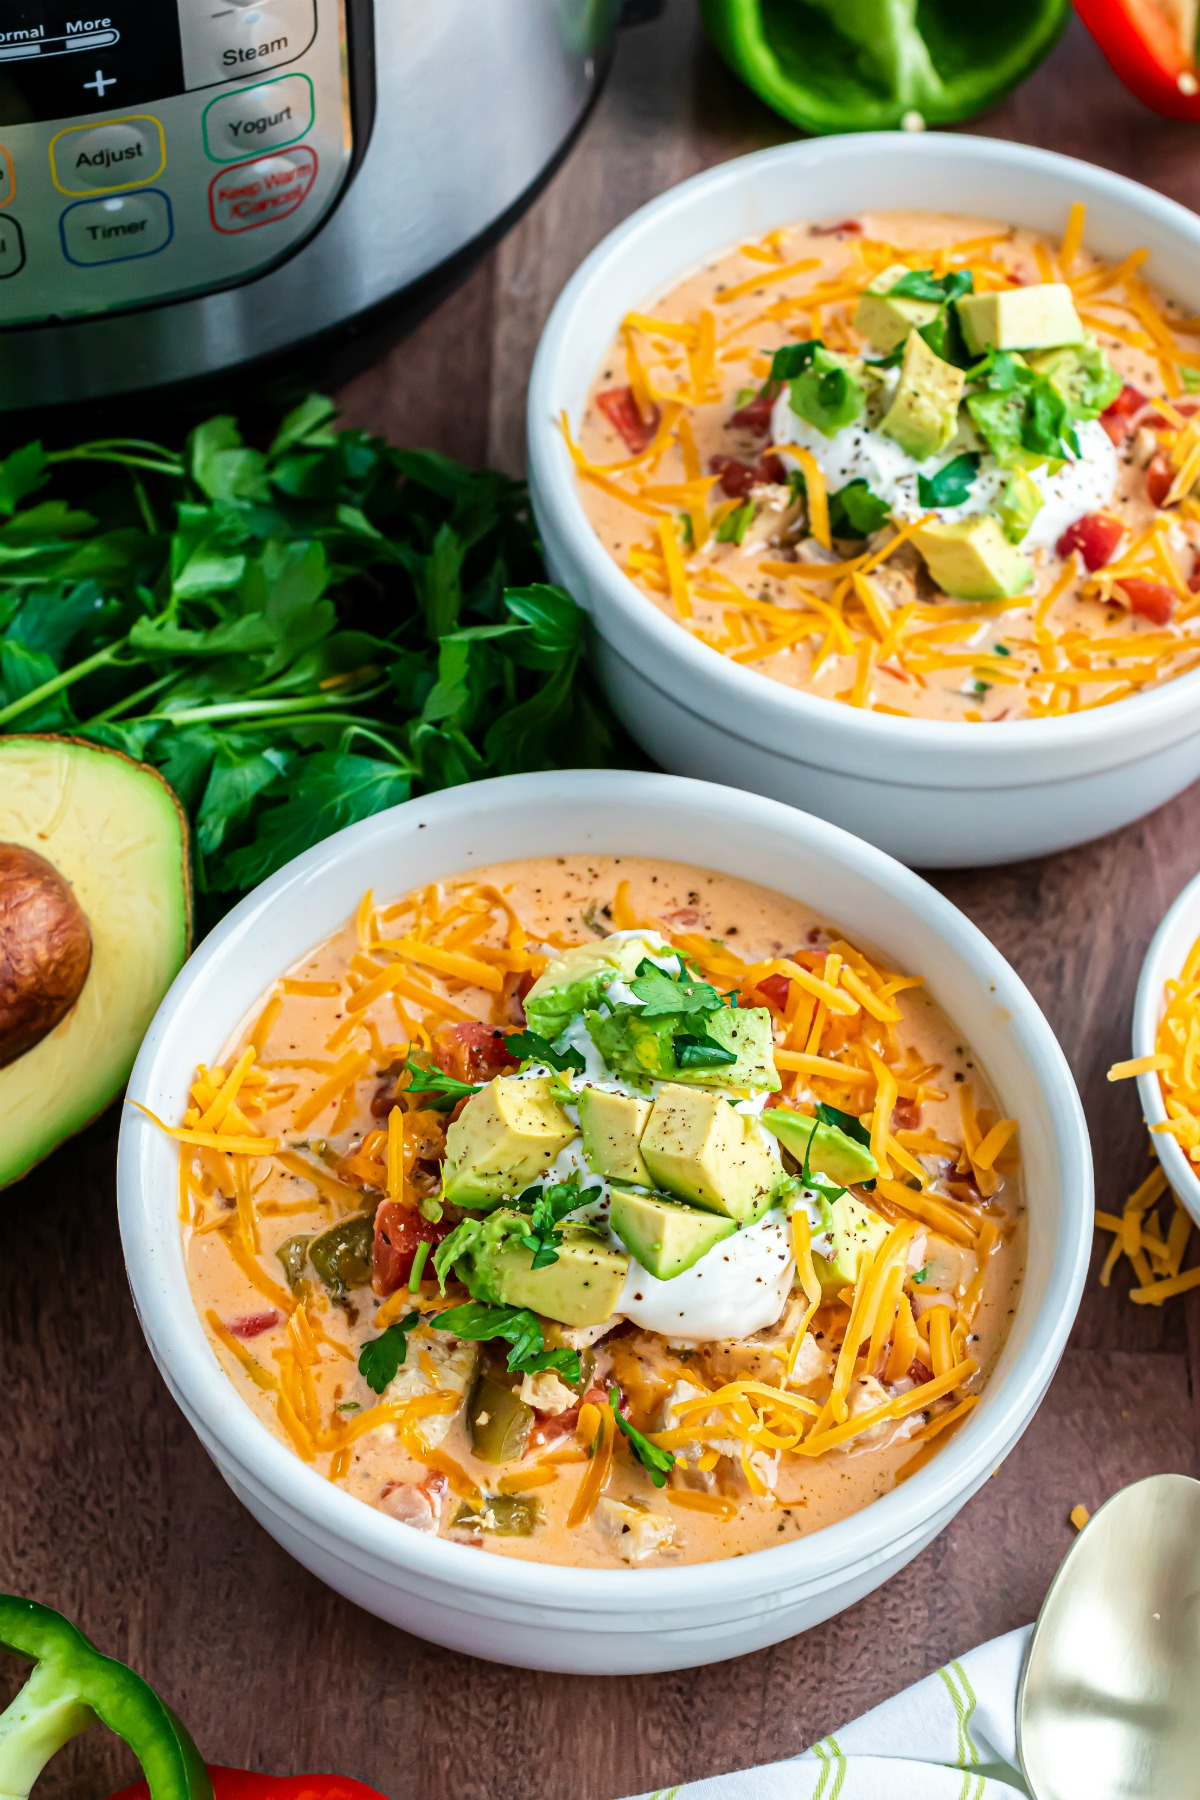 Two bowls of chicken fajita soup with sour cream, avocado and cilantro garnish.